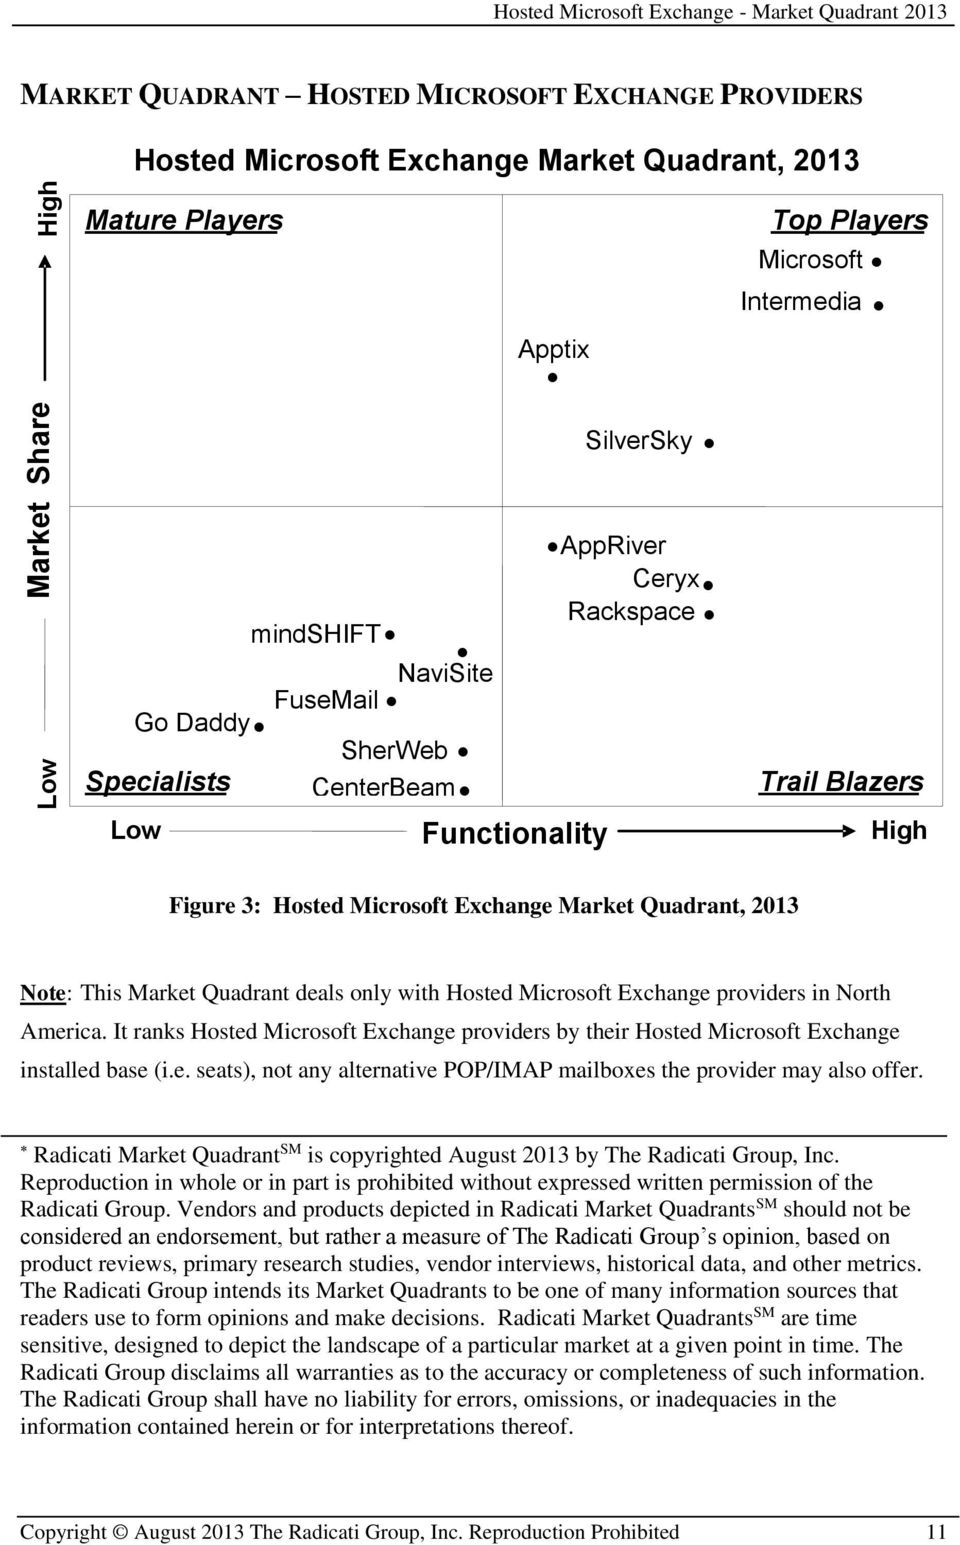 Quadrant deals only with Hosted Microsoft Exchange providers in North America. It ranks Hosted Microsoft Exchange providers by their Hosted Microsoft Exchange installed base (i.e. seats), not any alternative POP/IMAP mailboxes the provider may also offer.